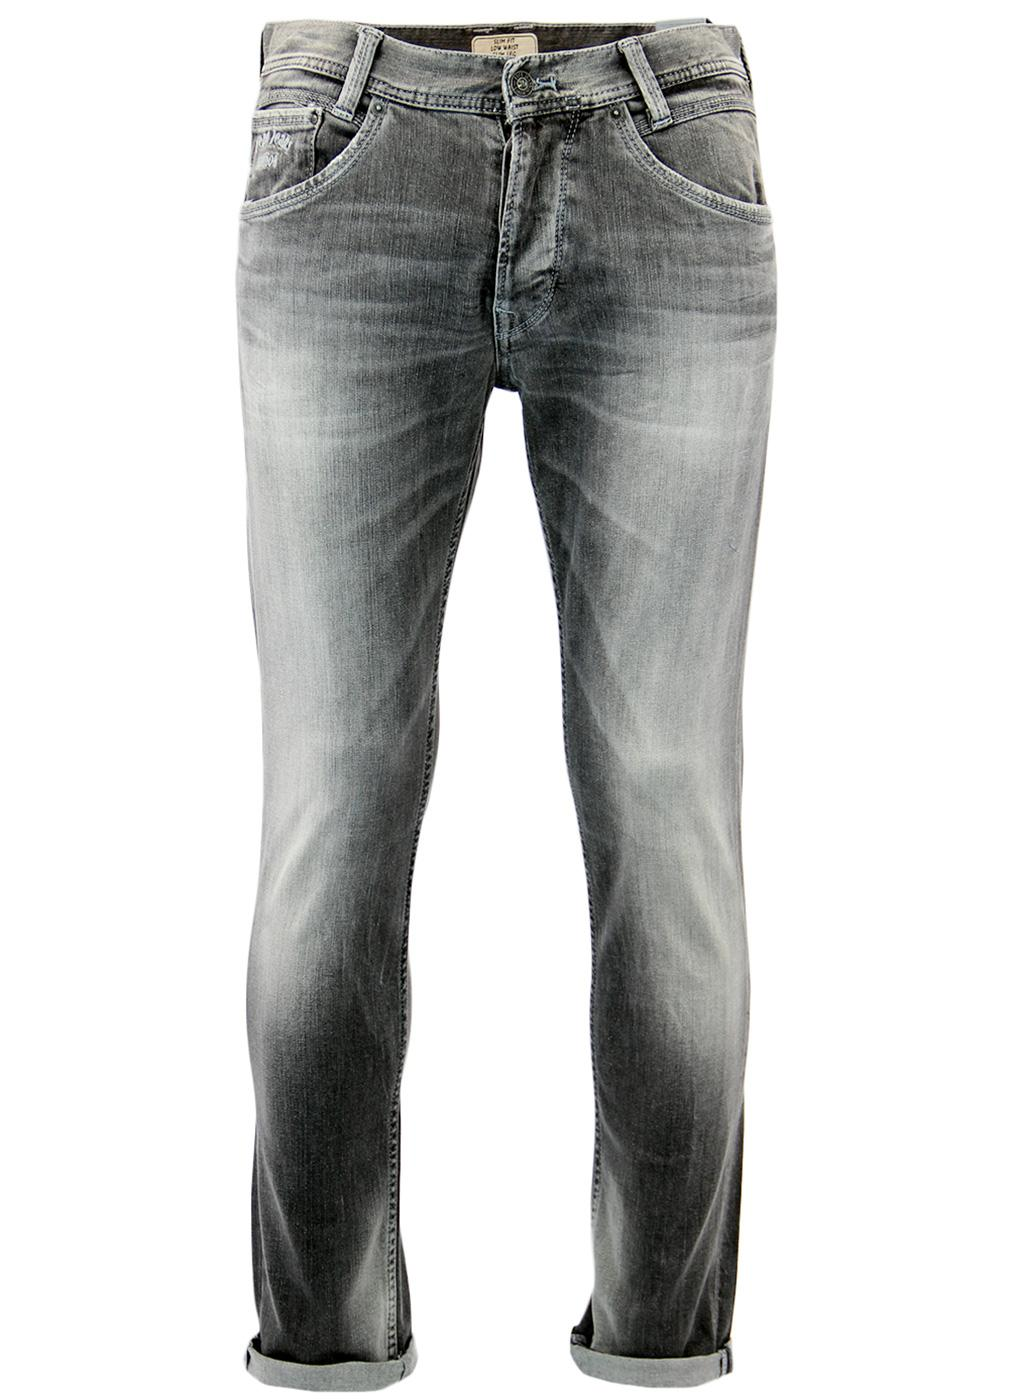 Spike PEPE JEANS Retro Mod Slim Tapered Fit Jeans